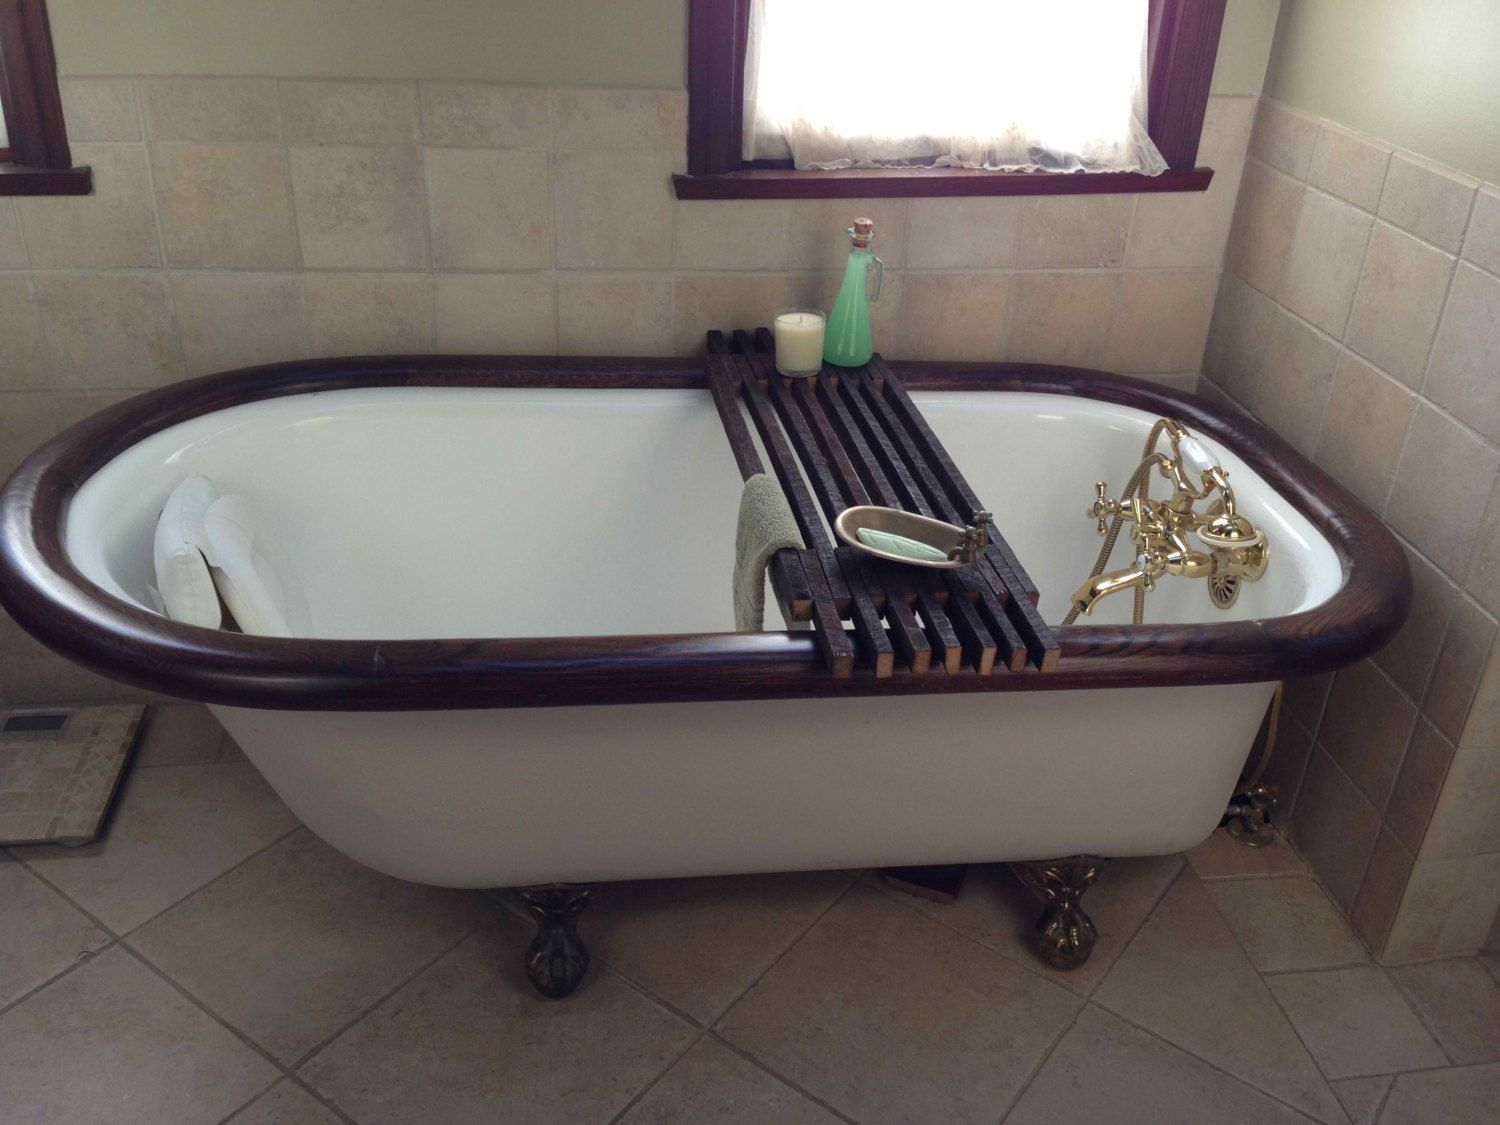 Bathtub Caddy Shelf, made from wooden sticks used for years in ...